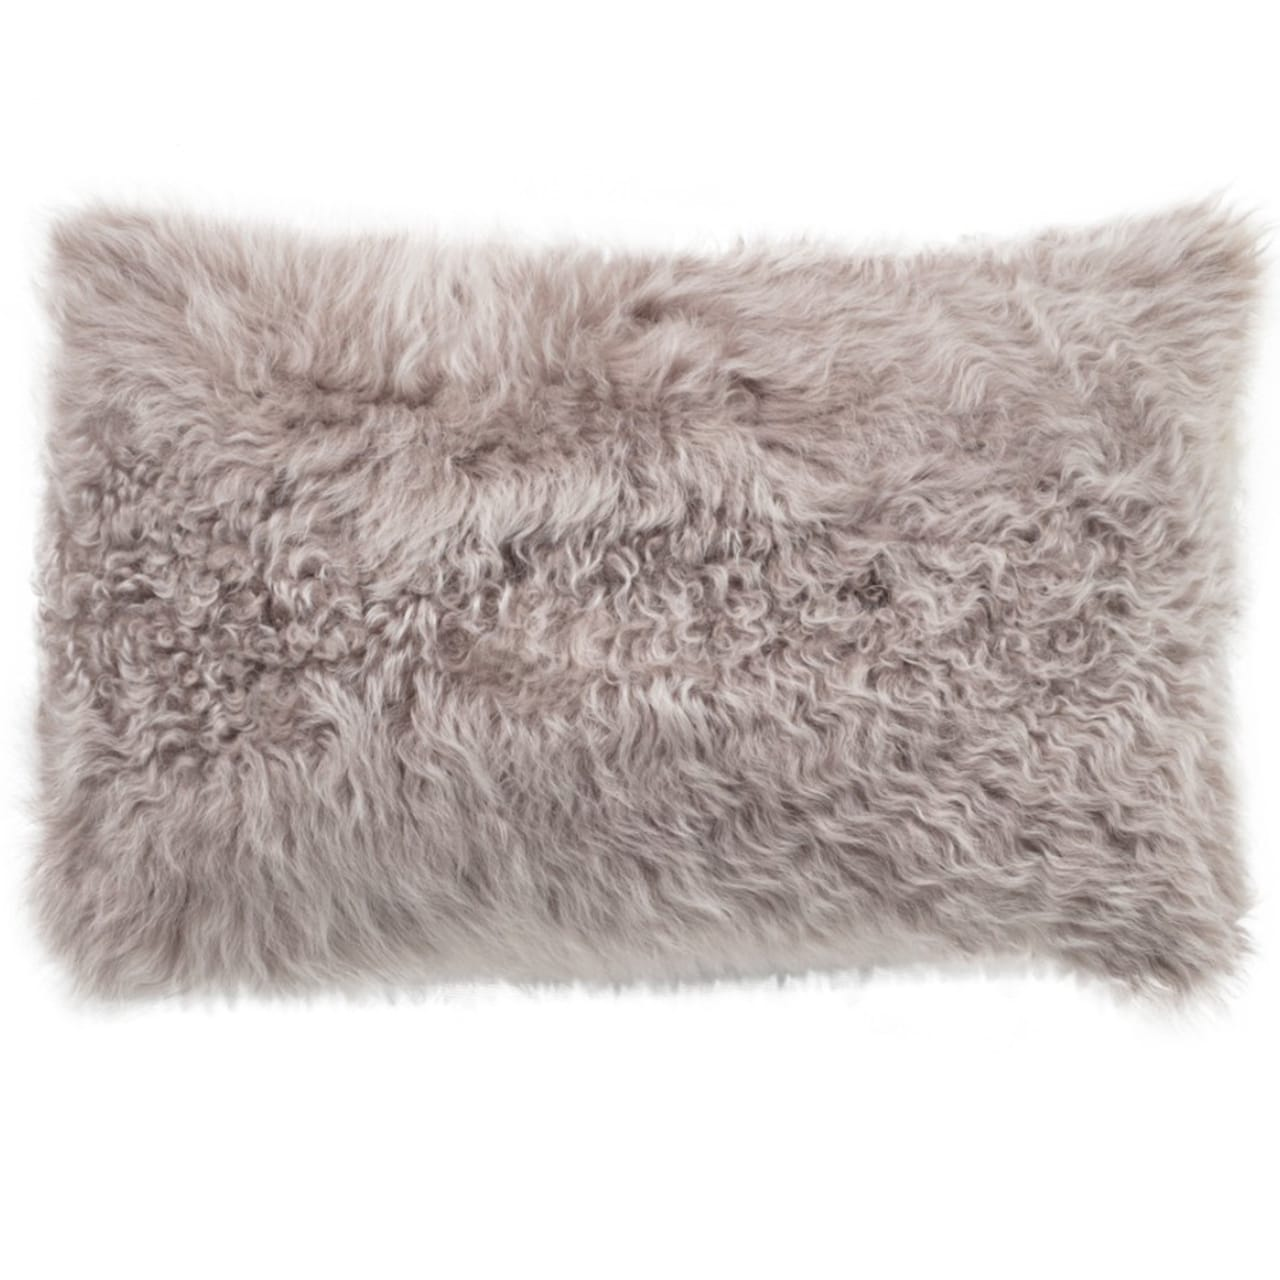 NEW-Shearling Pillow- Topo Curly- 35x55cm (TPTOPTO3555) - ANVOGG FEEL SHEARLING | ANVOGG